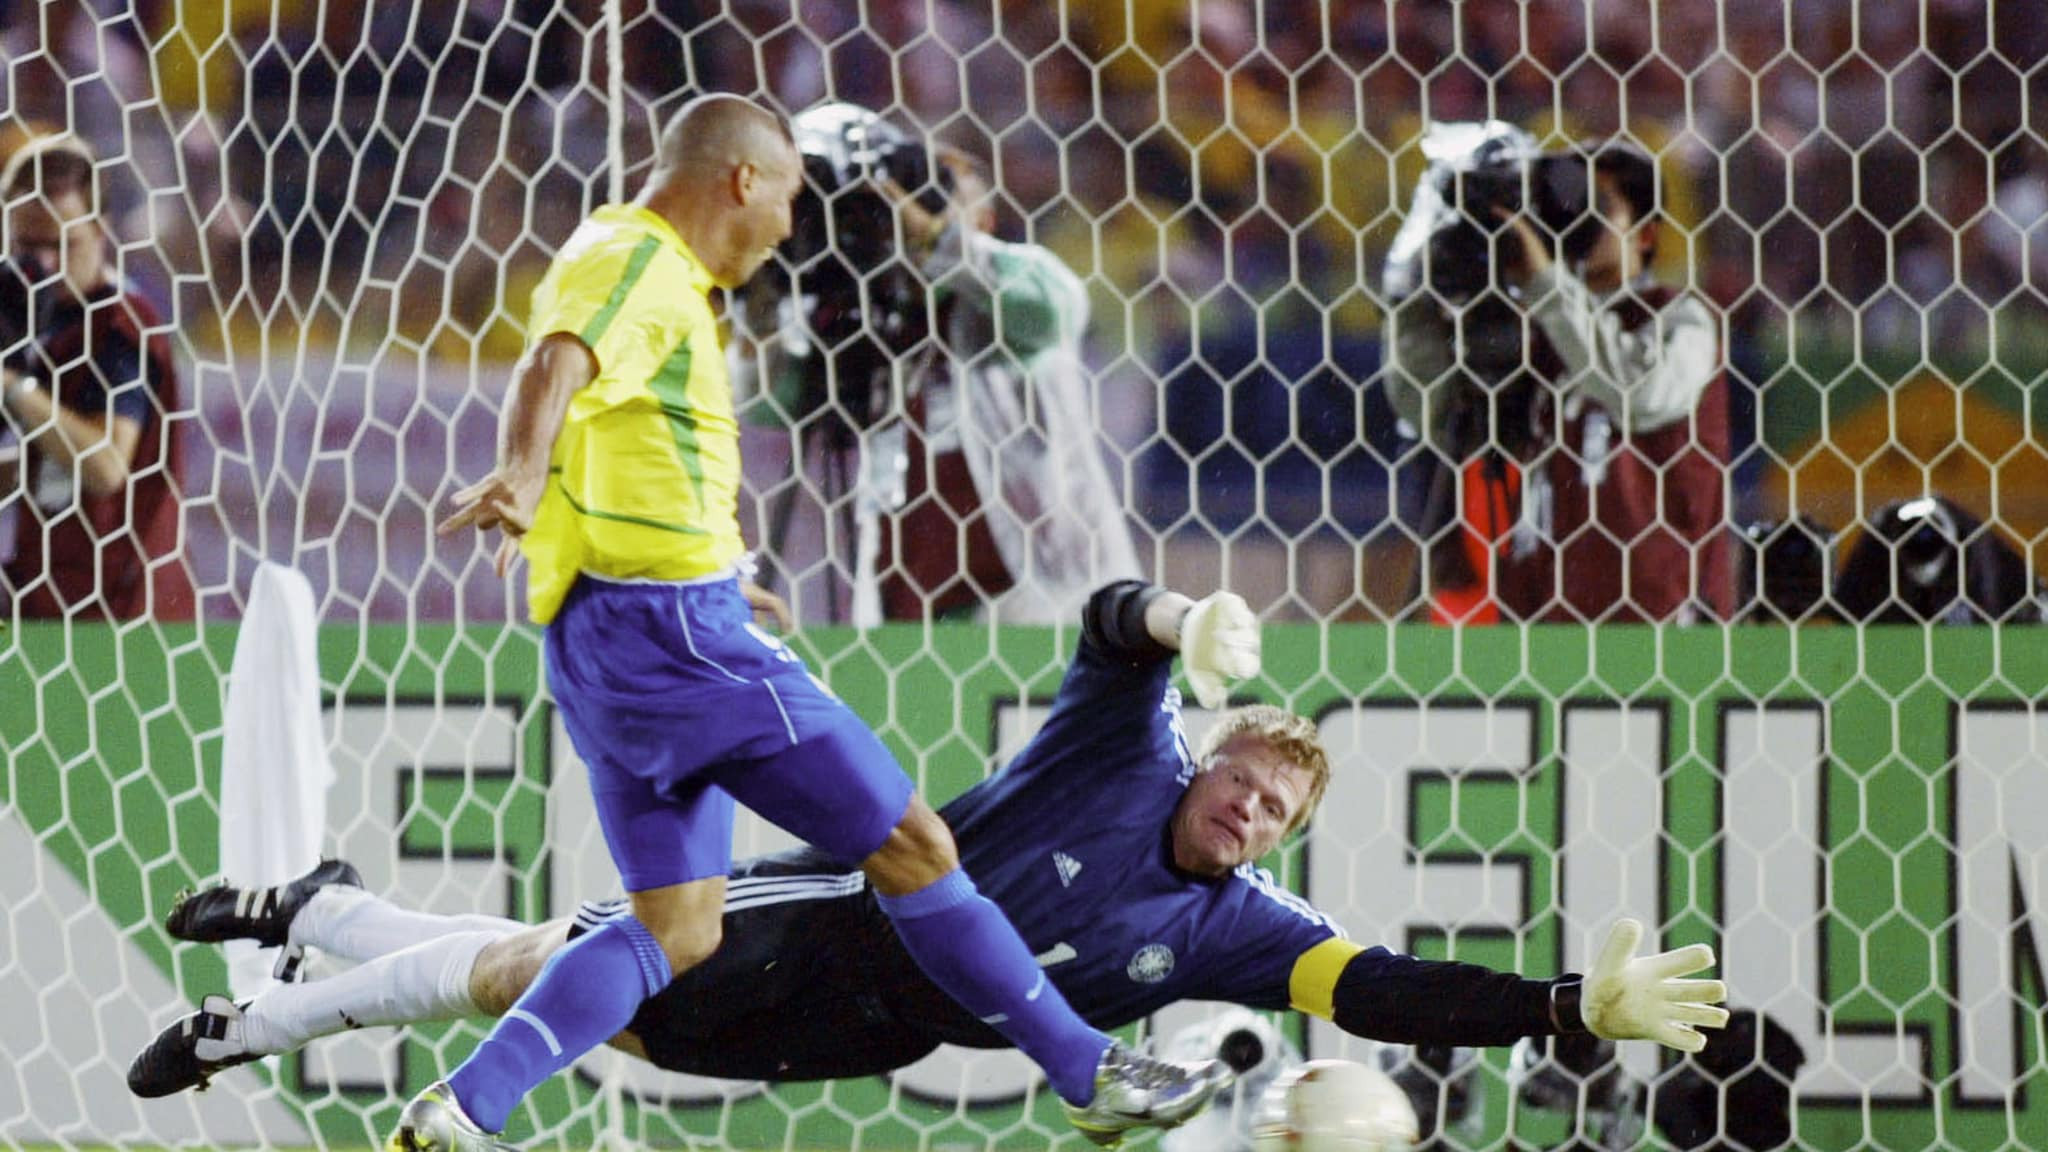 The decision that Host Broadcast Services should have a long-term future was taken the day before the 2002 FIFA World Cup final in Japan where Brazil beat Germany ©Getty Images